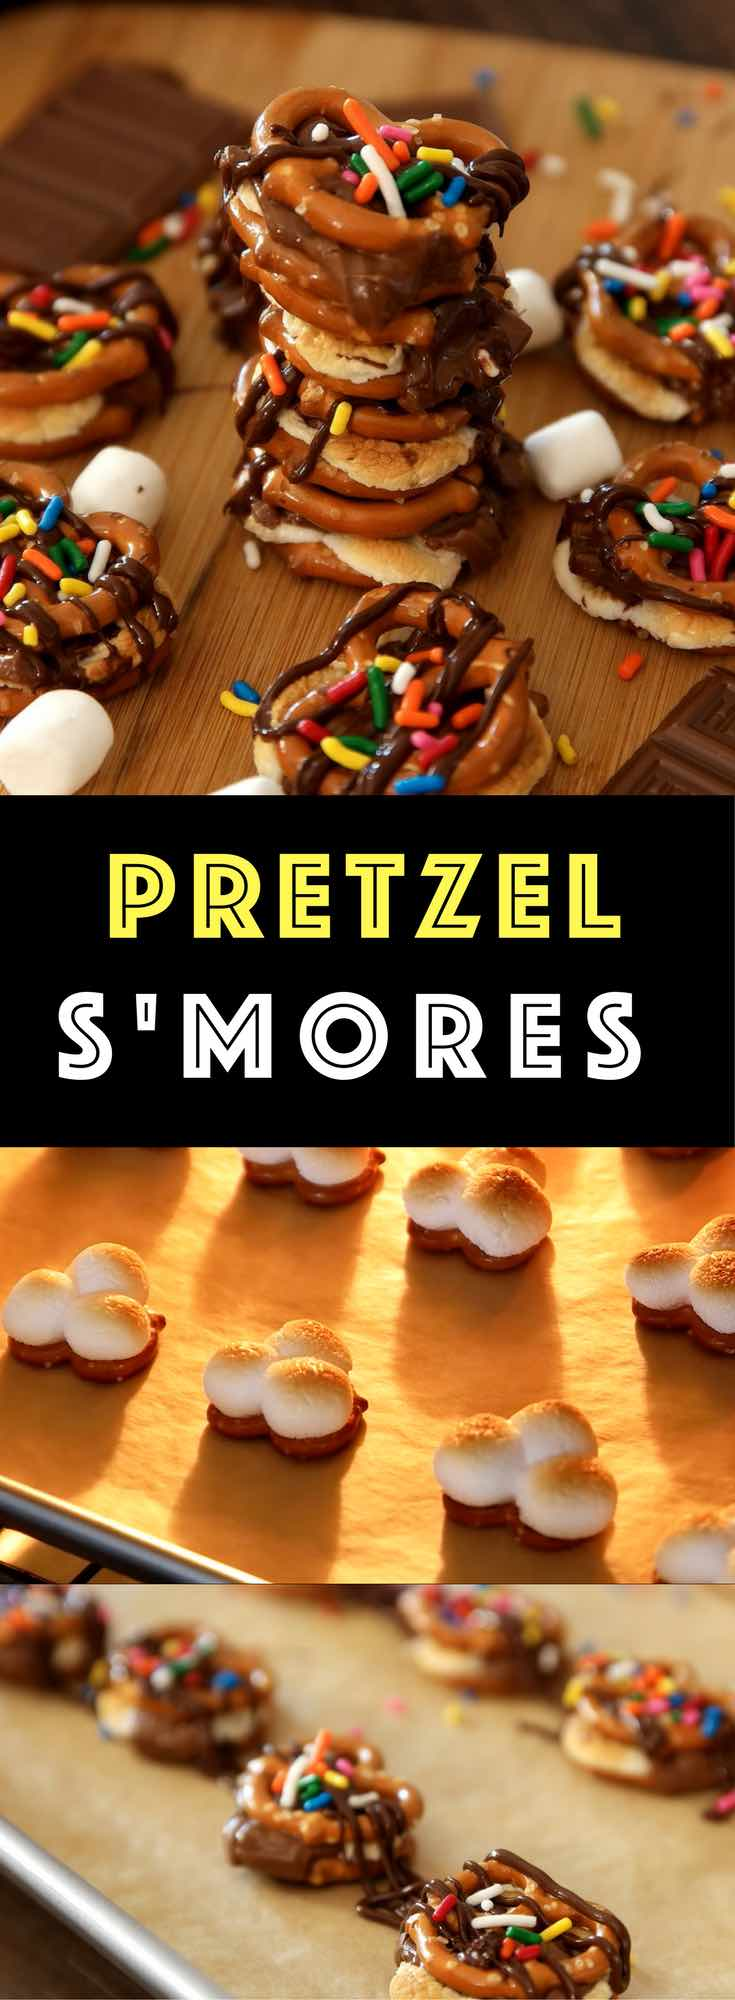 "Easy Pretzel S'mores – marshmallow and chocolate pretzel ""sandwiches"" baked to gooey perfection, then drizzled with chocolate sauce. You can't go wrong. All you need is only 3 ingredients: pretzels, marshmallows and Hershey's chocolate bars. Chocolate sauce and Sprinkles are optional if you'd like to add some fun and colors to it. SO GOOD! Fun recipe to make with kids. Quick and Easy recipe. 3 Ingredient Video recipe."